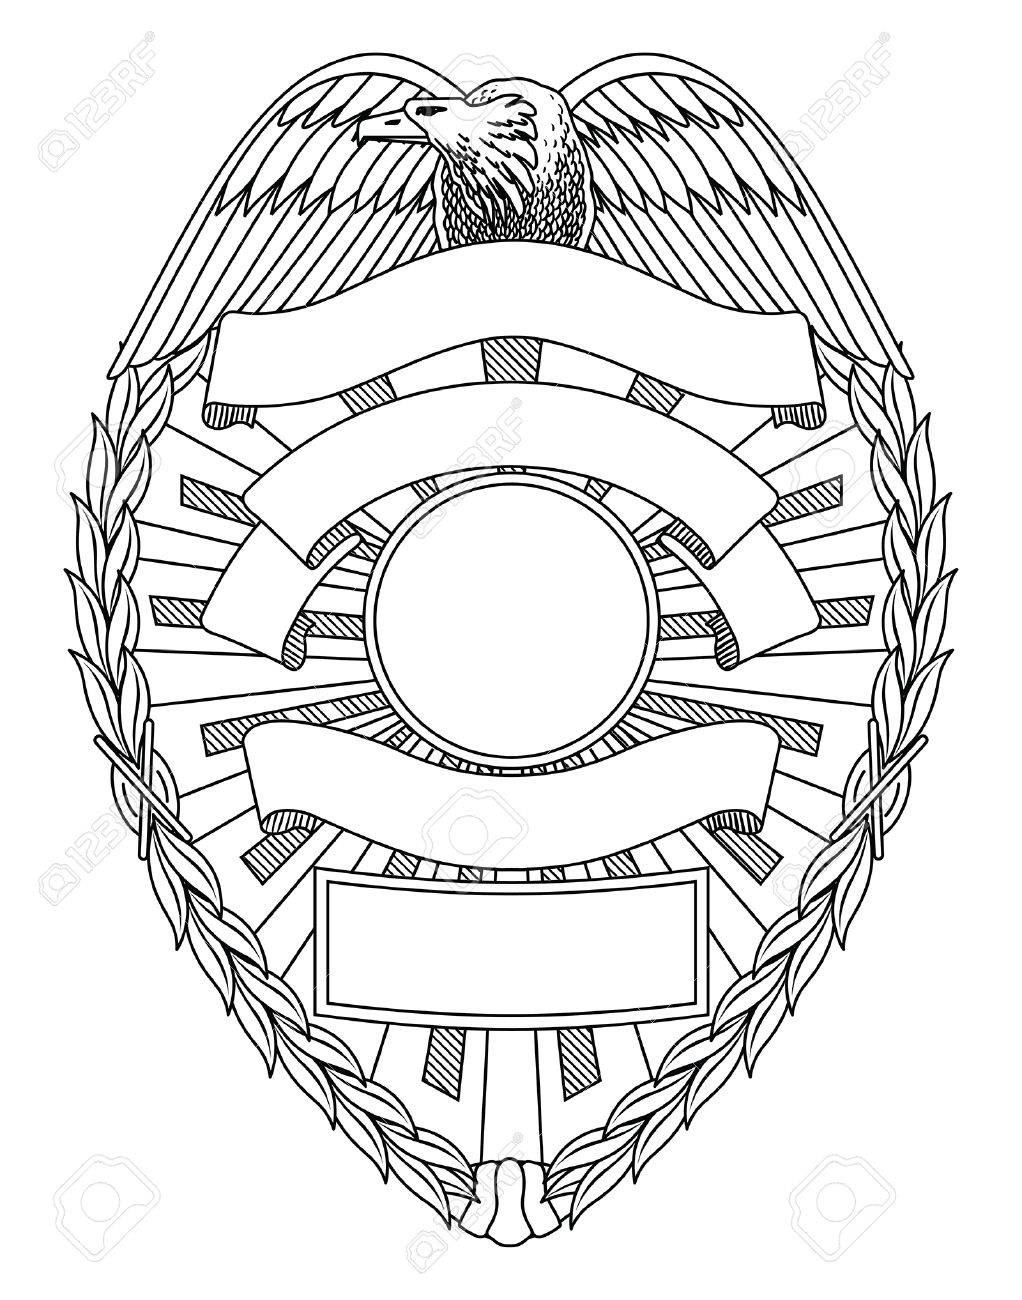 Police Badge Blank is an illustration of a police or law enforcement badge with open space for your specific text such as location, badge number, etc. - 70863014